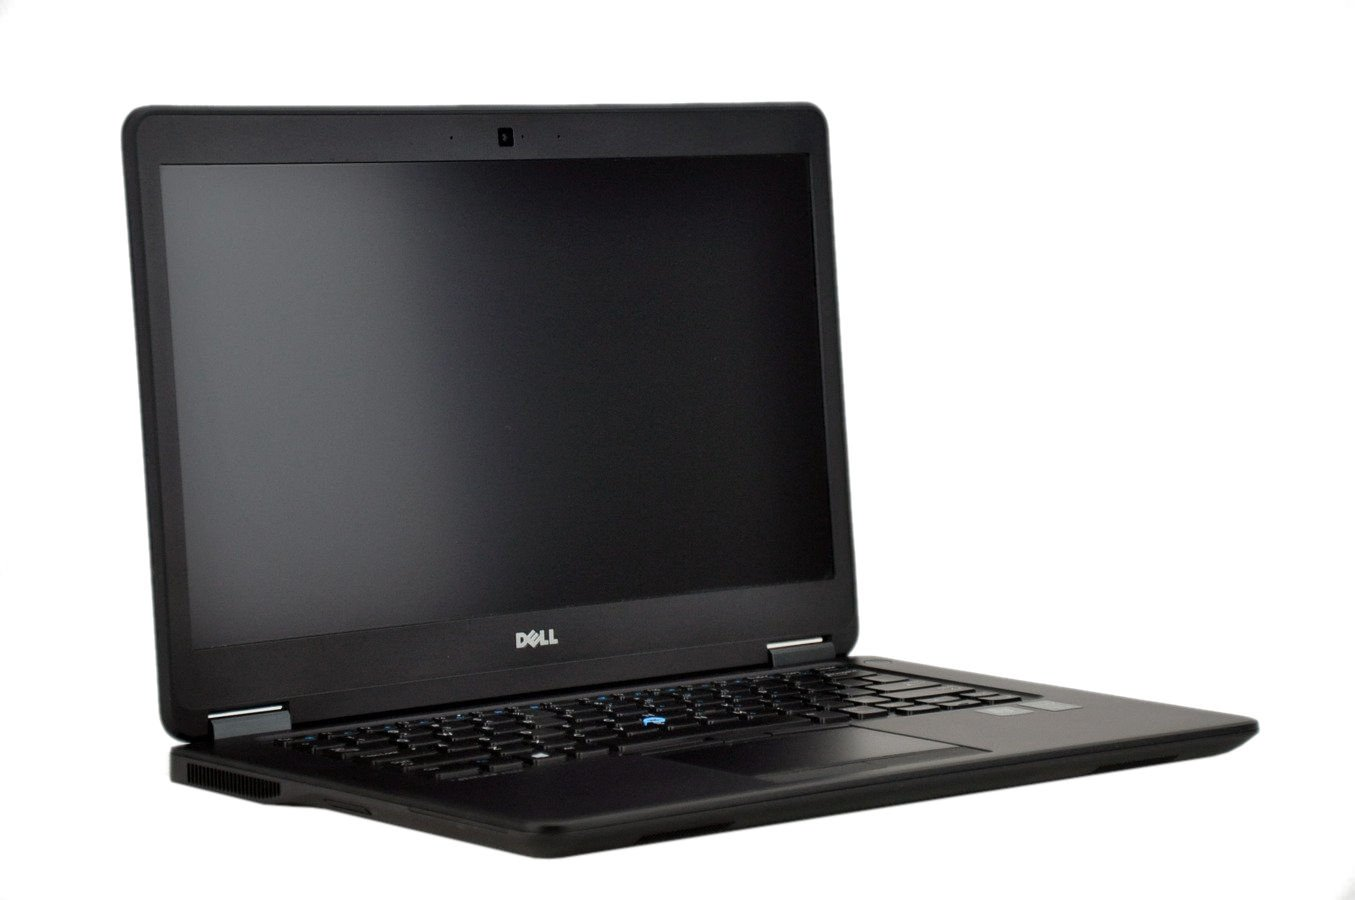 "Laptop Dell Latitude E7450 i5-5300U 8 GB 256 SSD 14"" FHD W7Pro A"